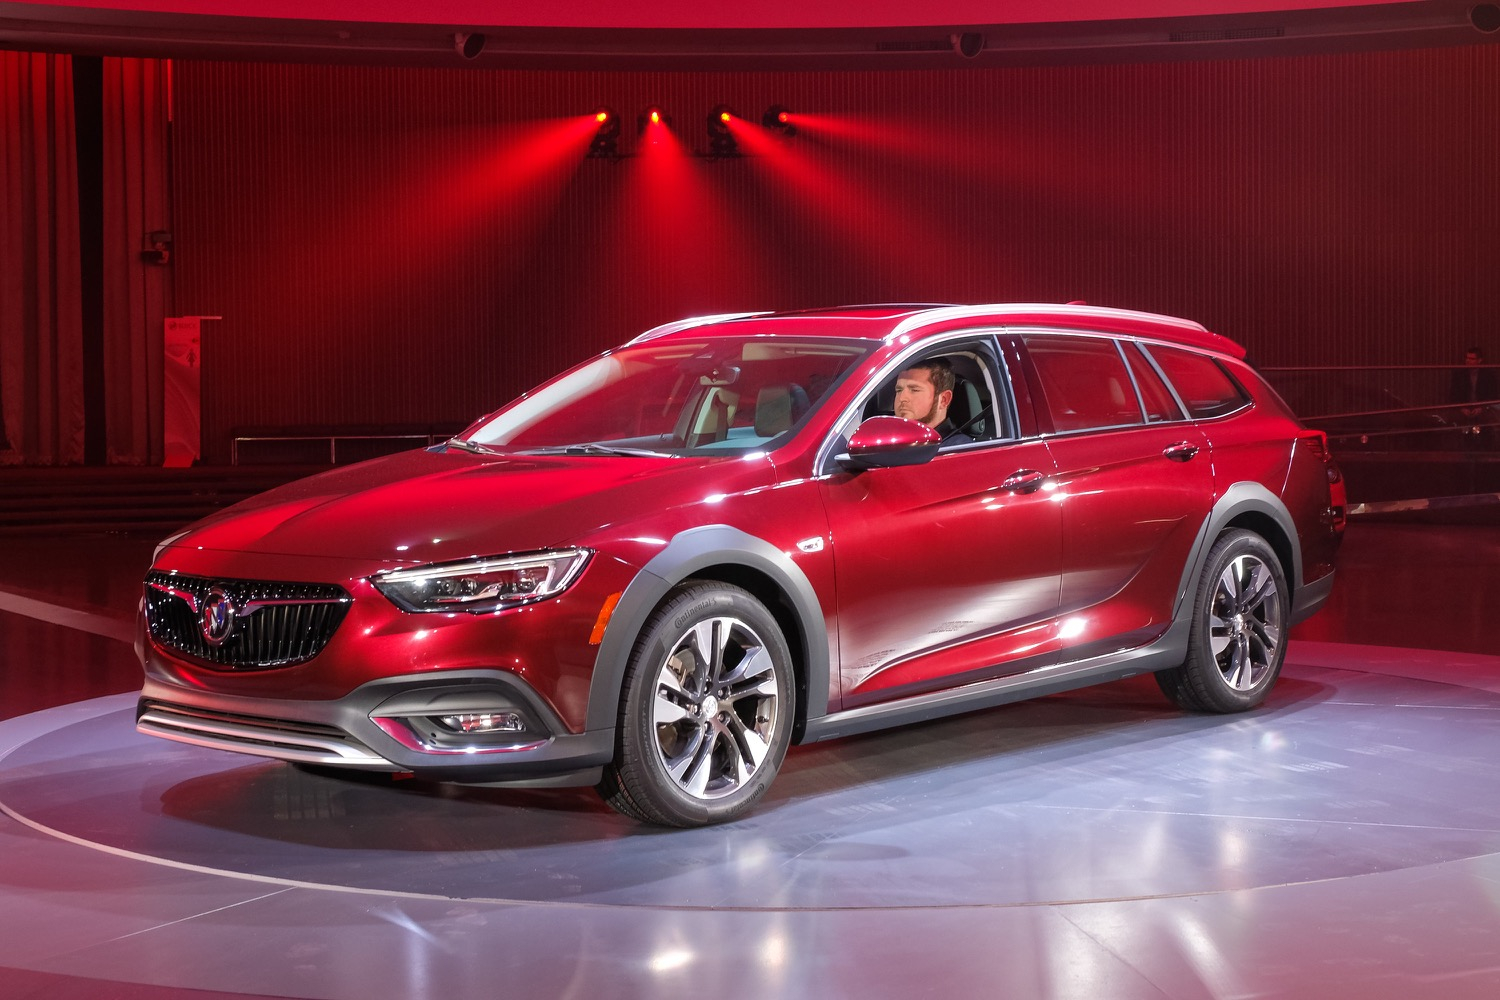 Regal Tourx Owners Are Buick's Richest Customers | Gm Authority New 2022 Buick Regal Tourx Discontinued, Mpg, Engine